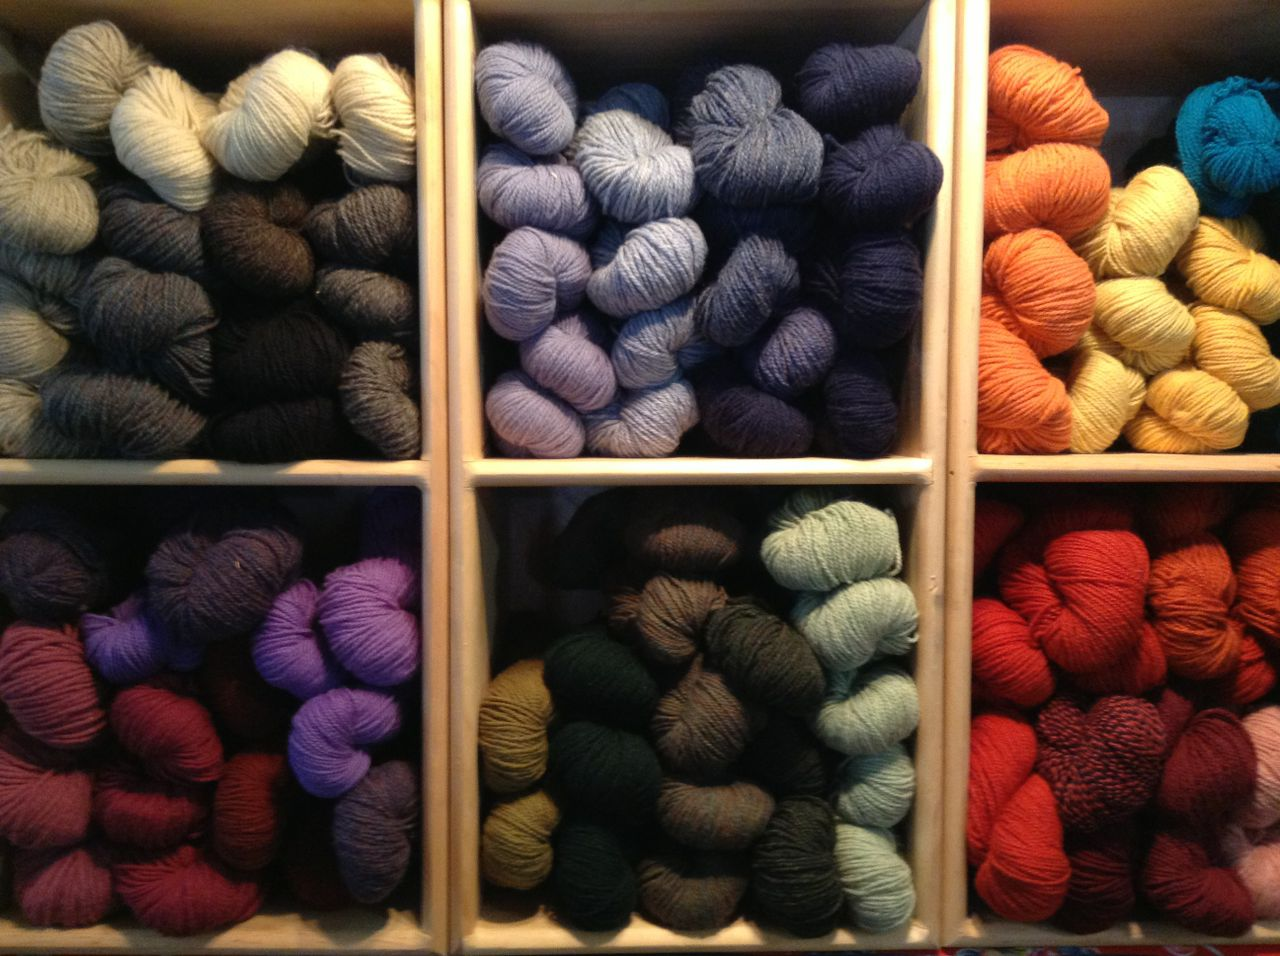 Sap Bush Hollow Farm yarn